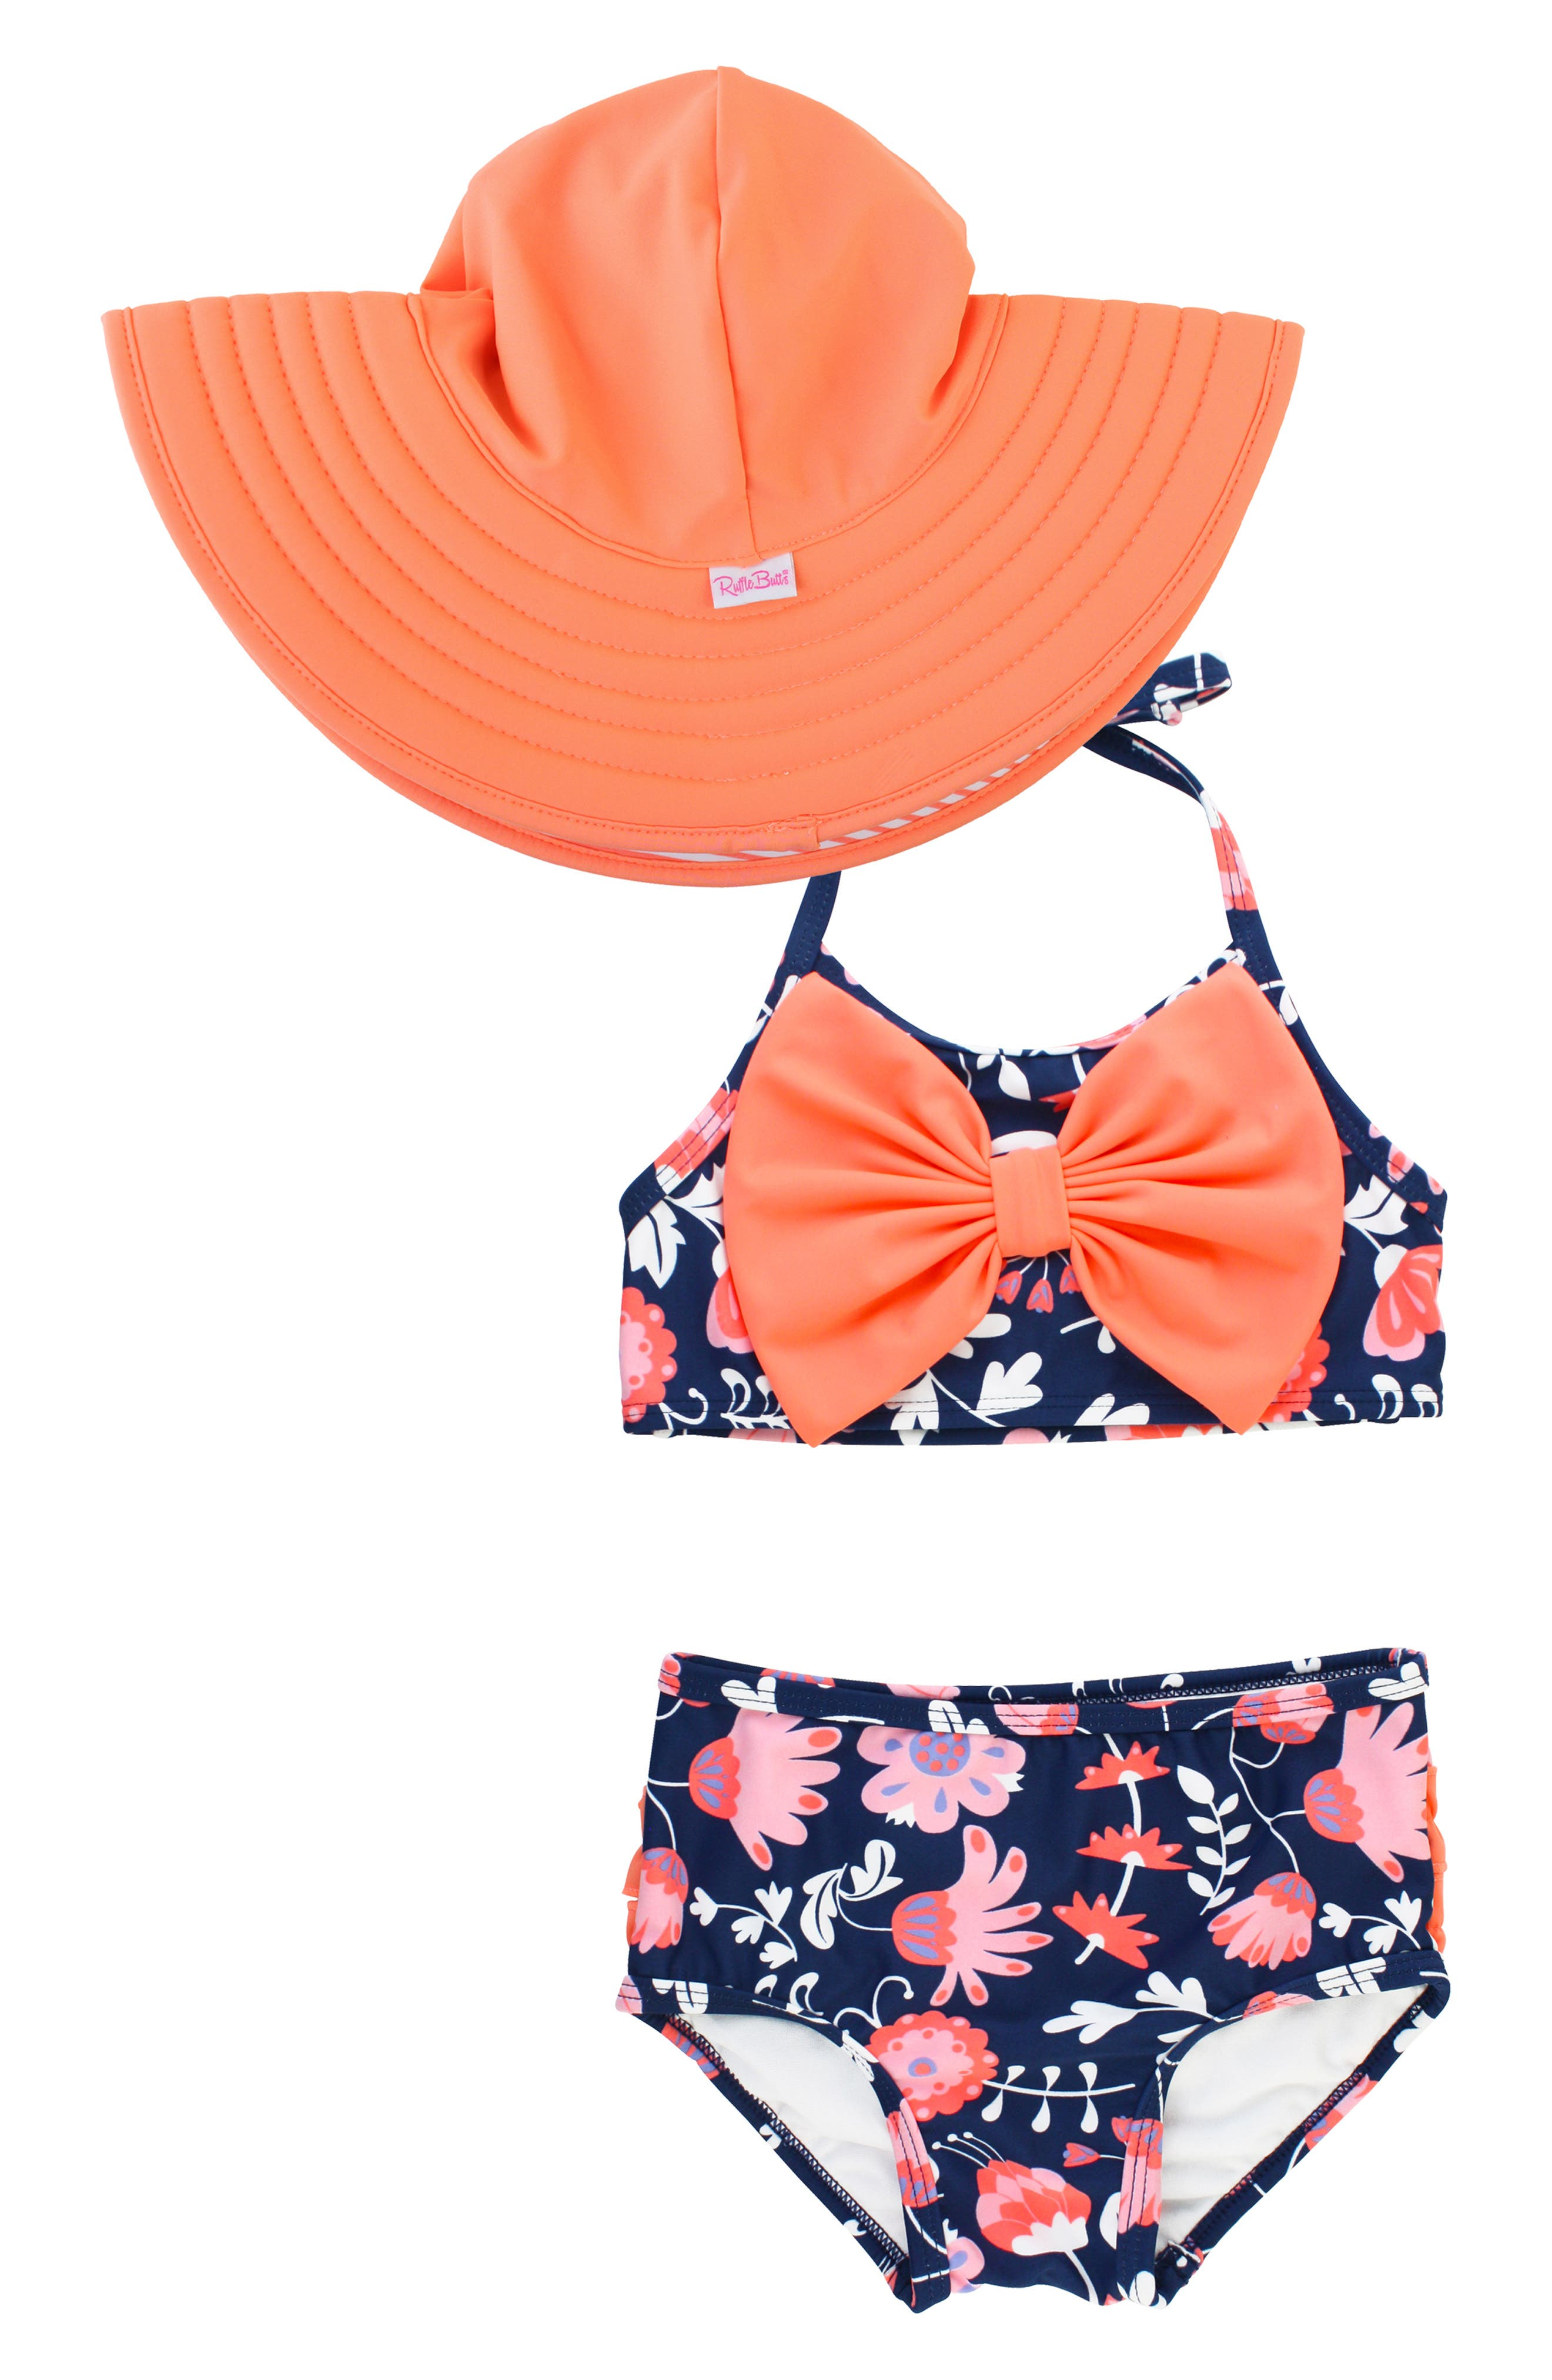 031dc6ab51 Girl's Rufflebutts Botanical Two-Piece Swimsuit & Floppy Sun Hat Set